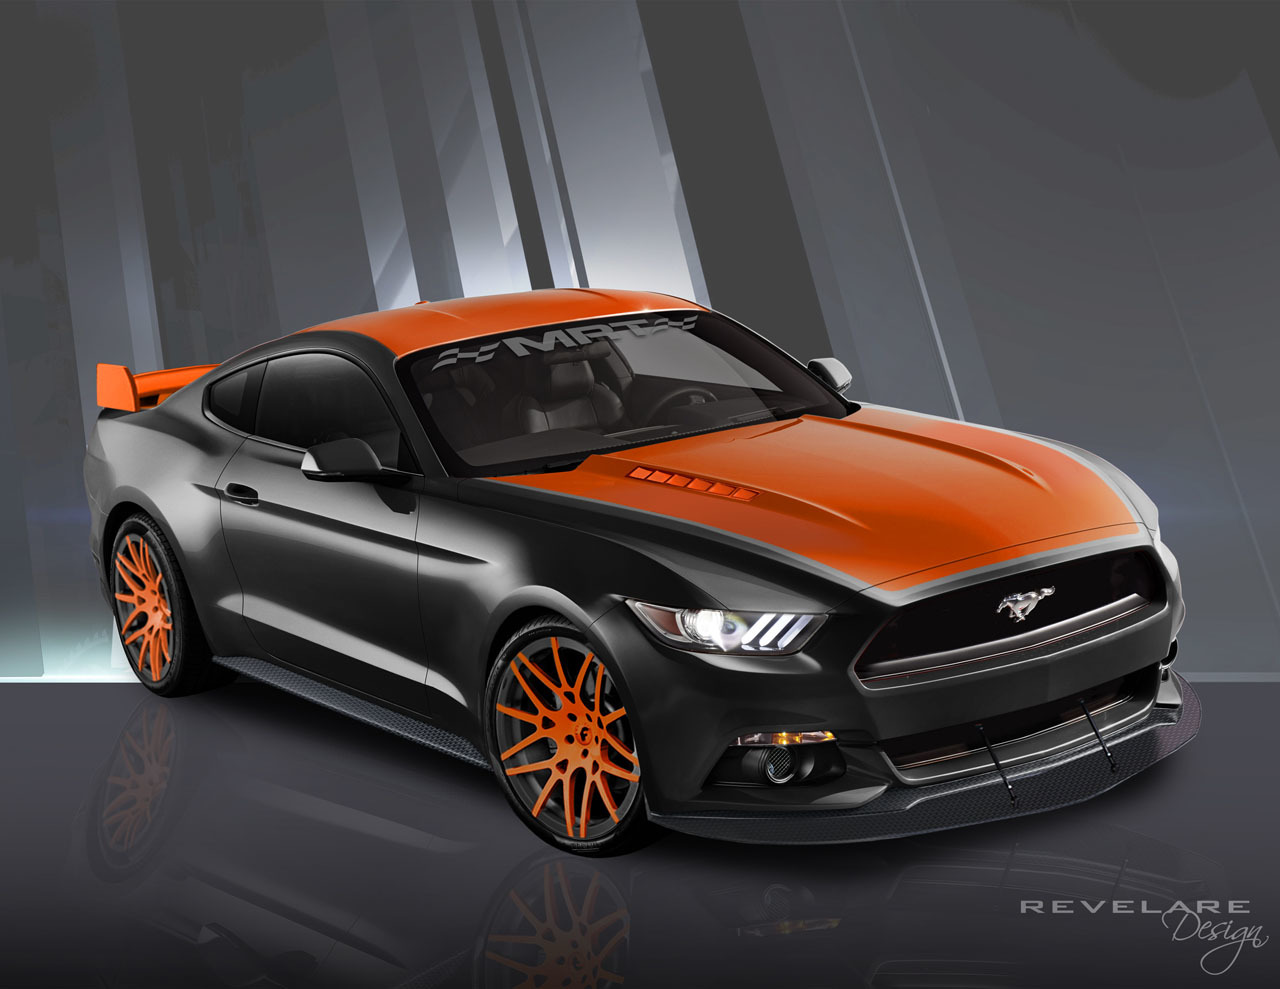 2015 Ford Mustang To Take Sema By Storm With Over 12